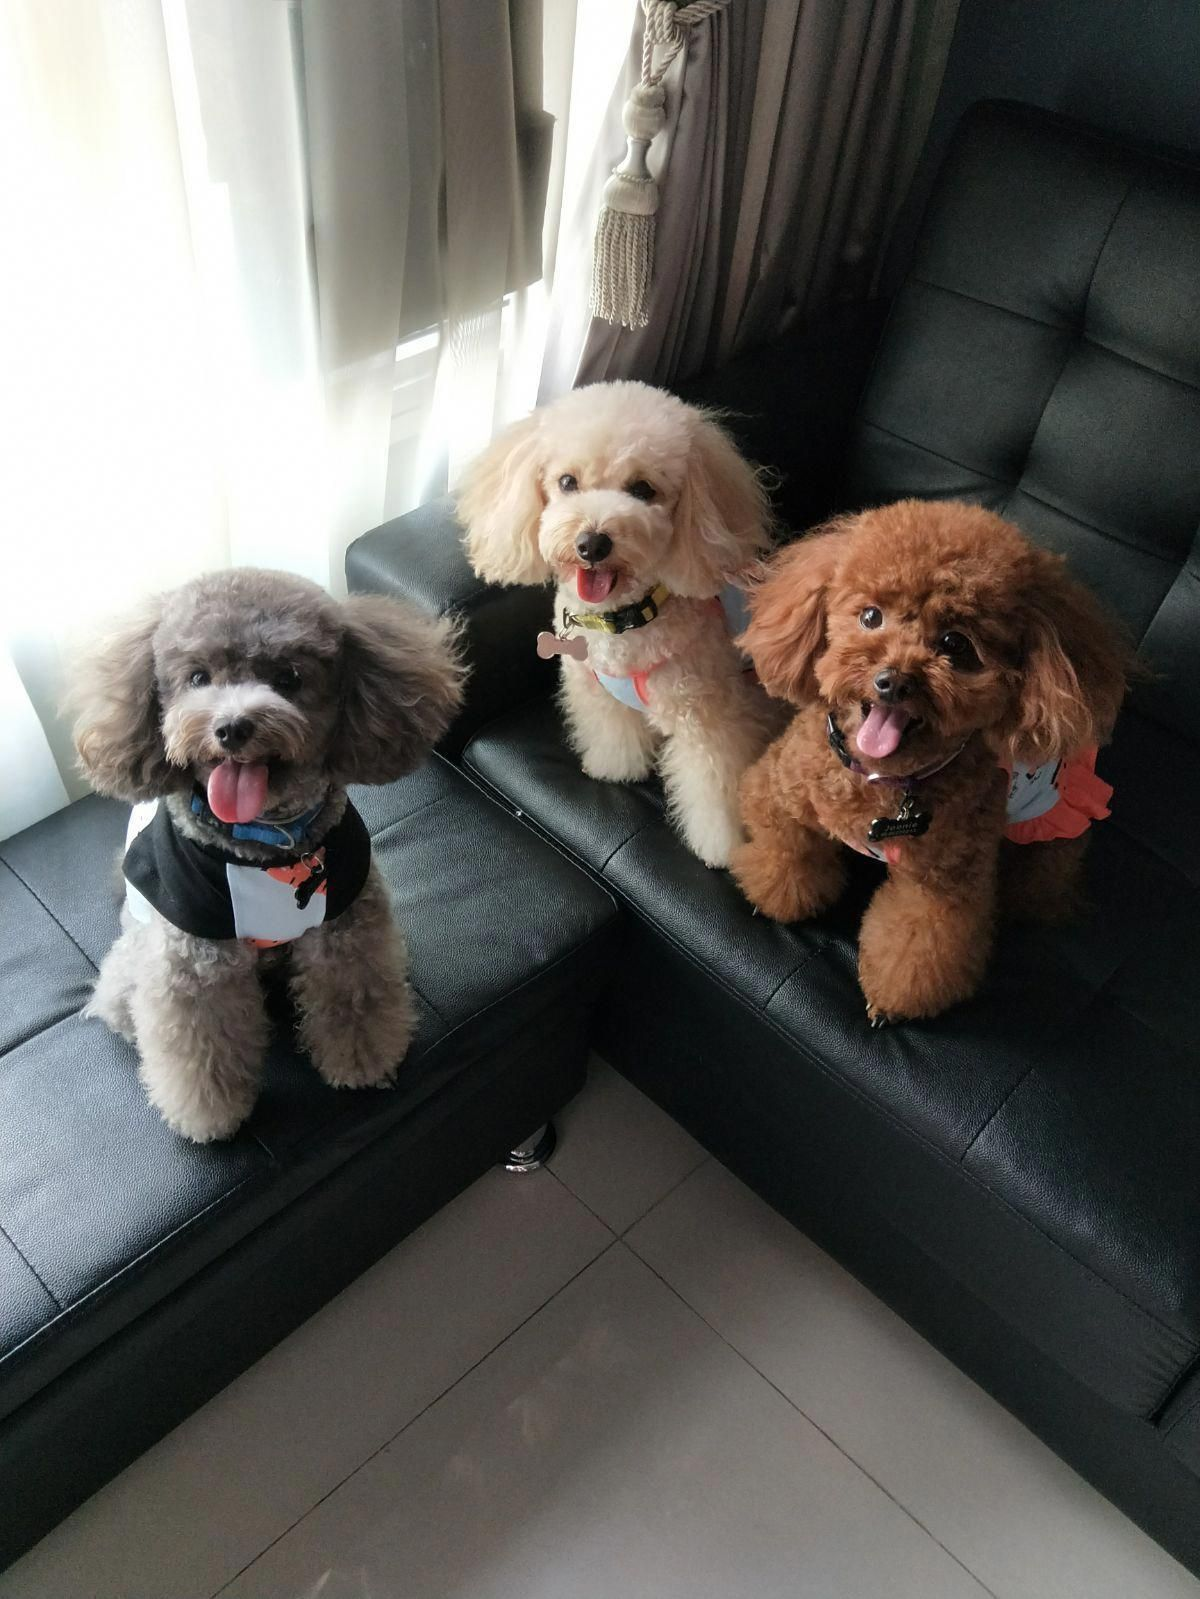 Everything I like about the Very Smart Poodle Pups #poodleboy #whitepoodle